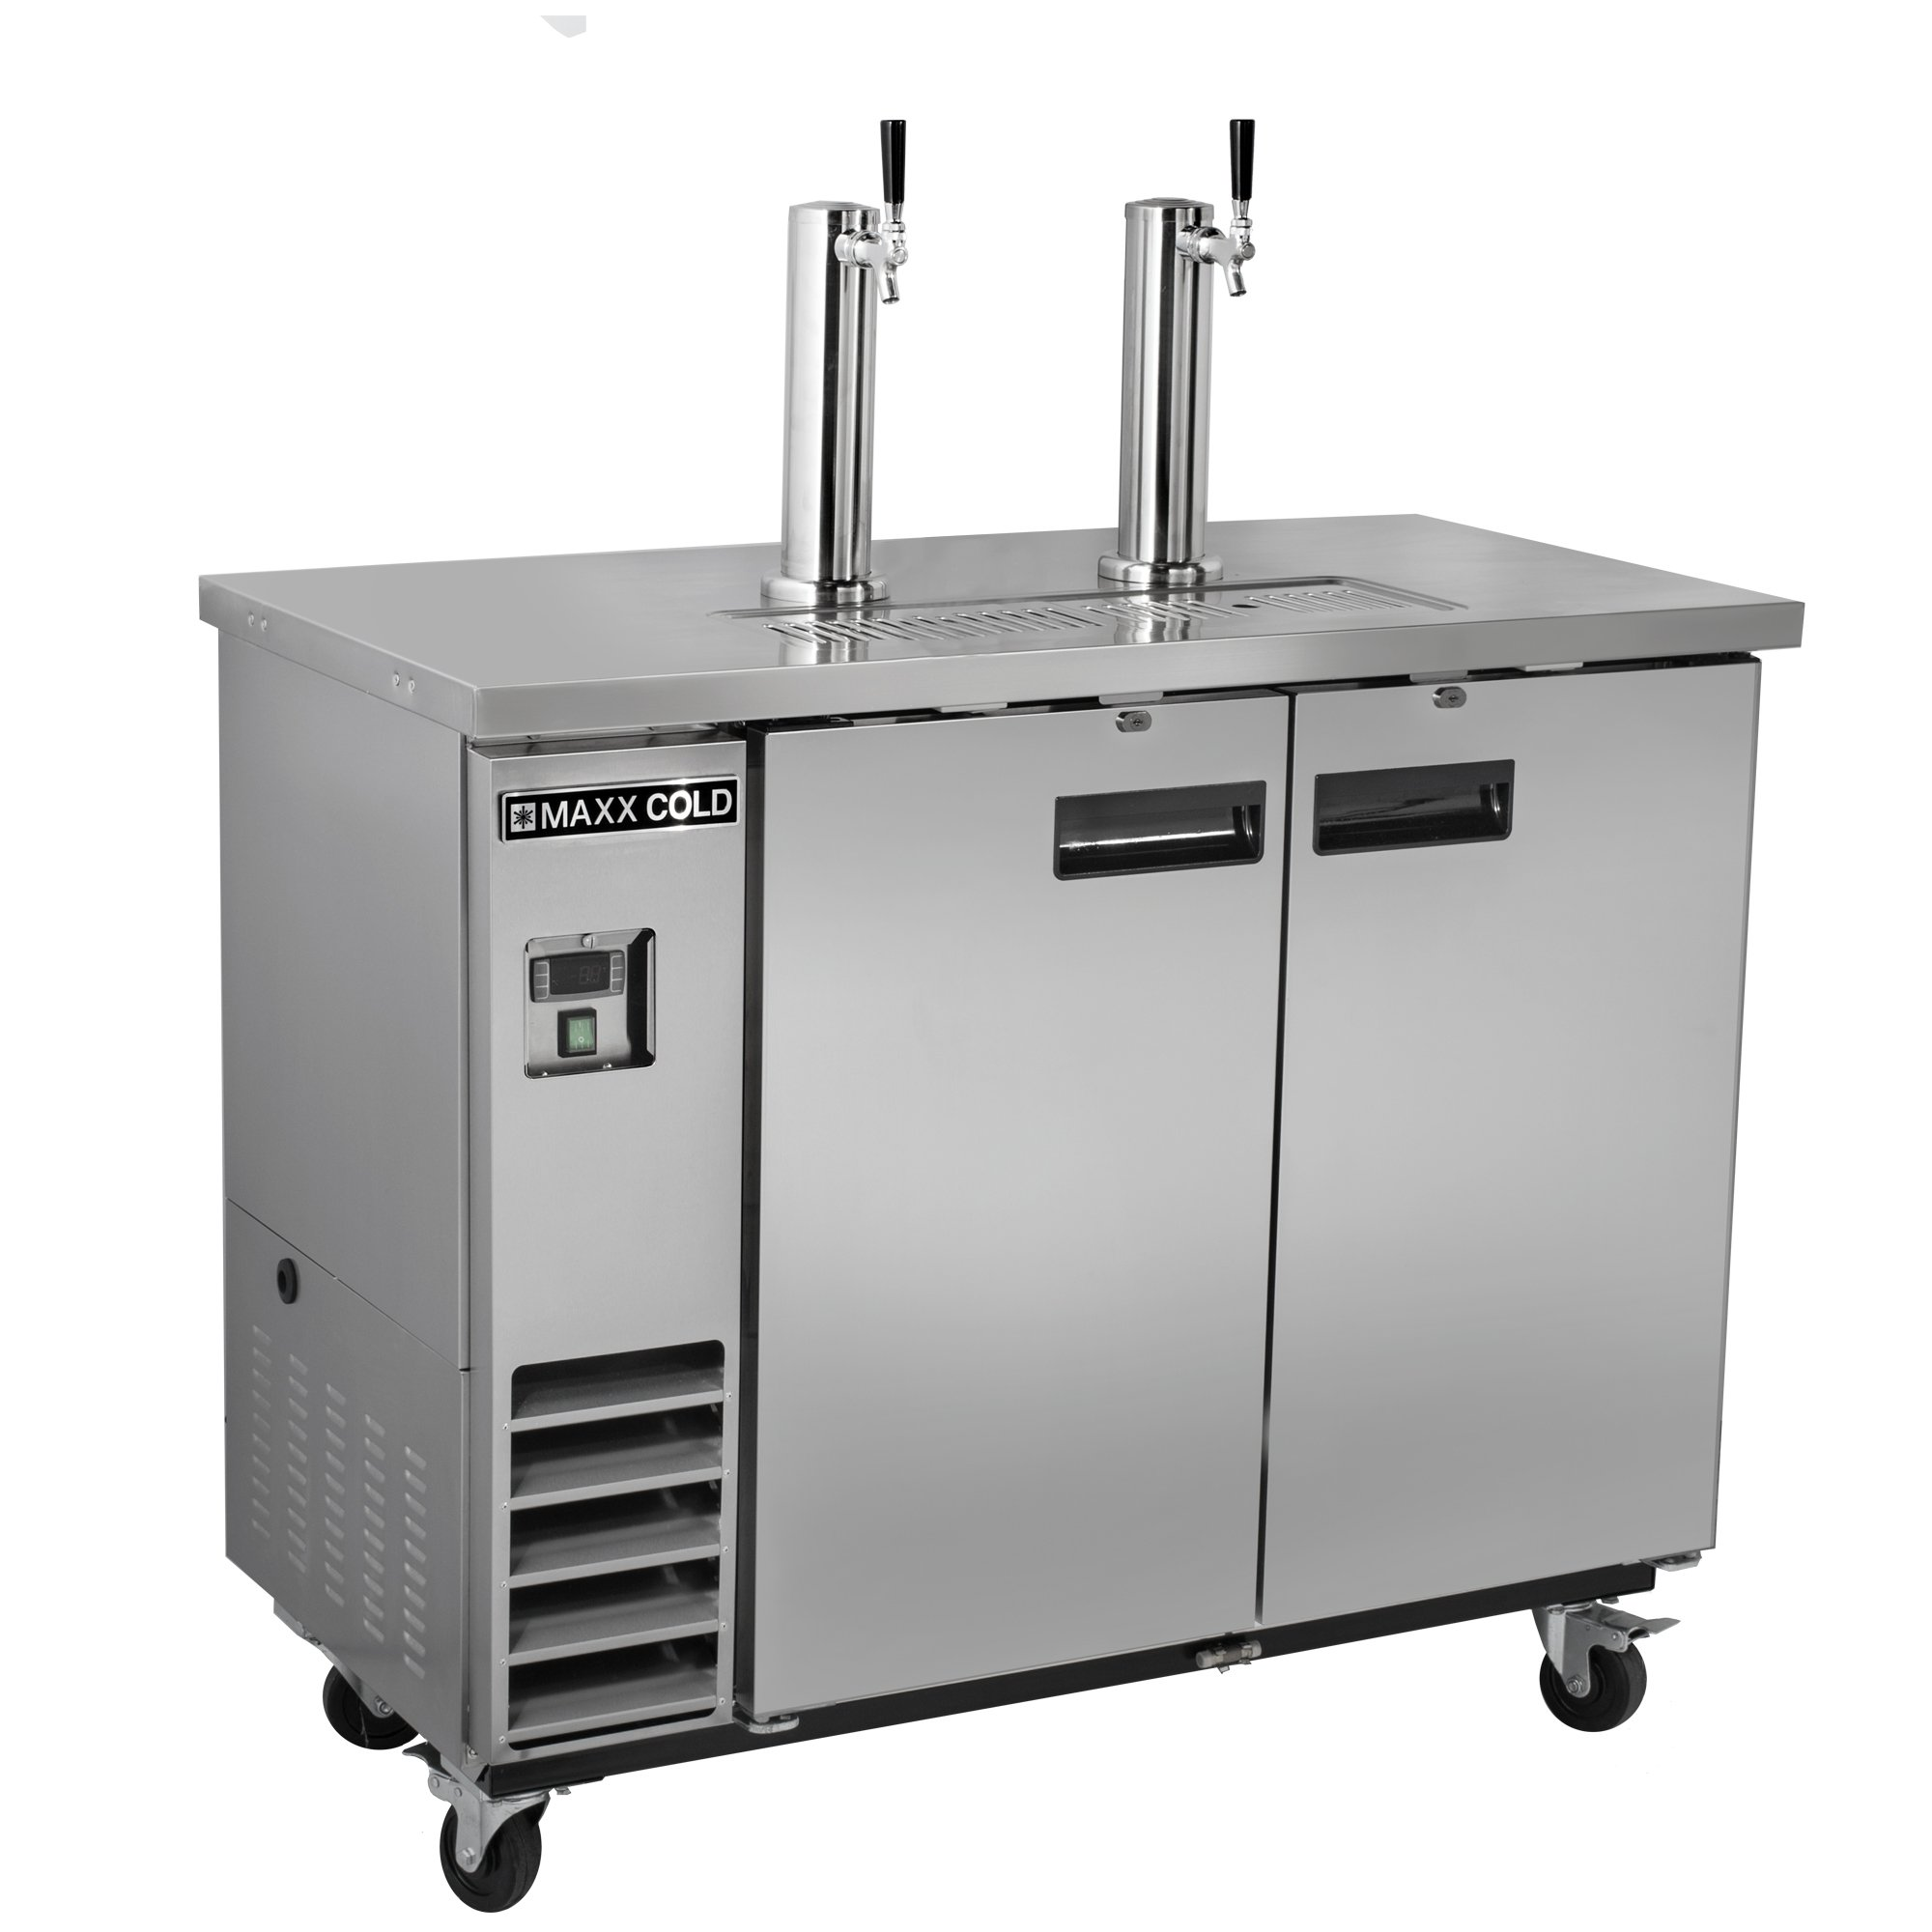 Maxx Cold MXBD48-2S Commercial Stainless Steel NSF Bar Direct Draw Kegerator Beer Dispenser Cooler with 2 Towers Taps Holds 2 Half 1/2 Size Kegs, 47.5 Inch Wide 10.5 Cubic Feet, Silver by MAXX Cold